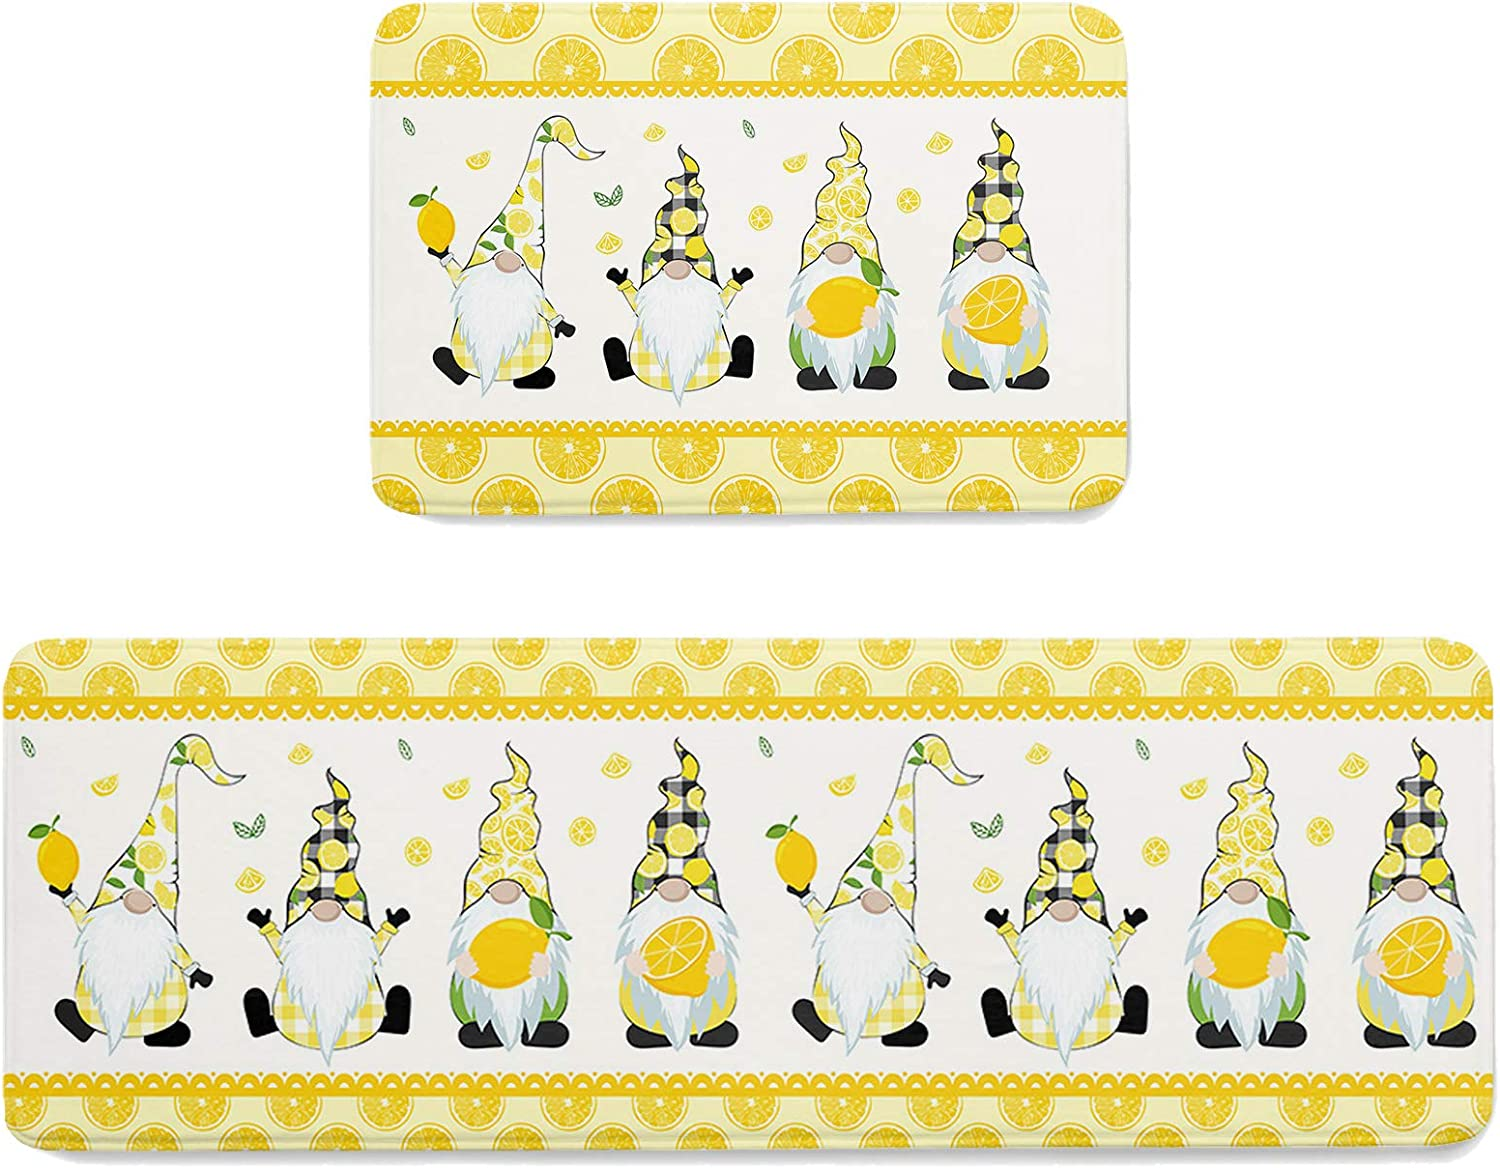 LALADecor 2 Piece Kitchen Rugs Daily bargain sale and Ye Farm Fresh Cute Mats Lemon Shipping included